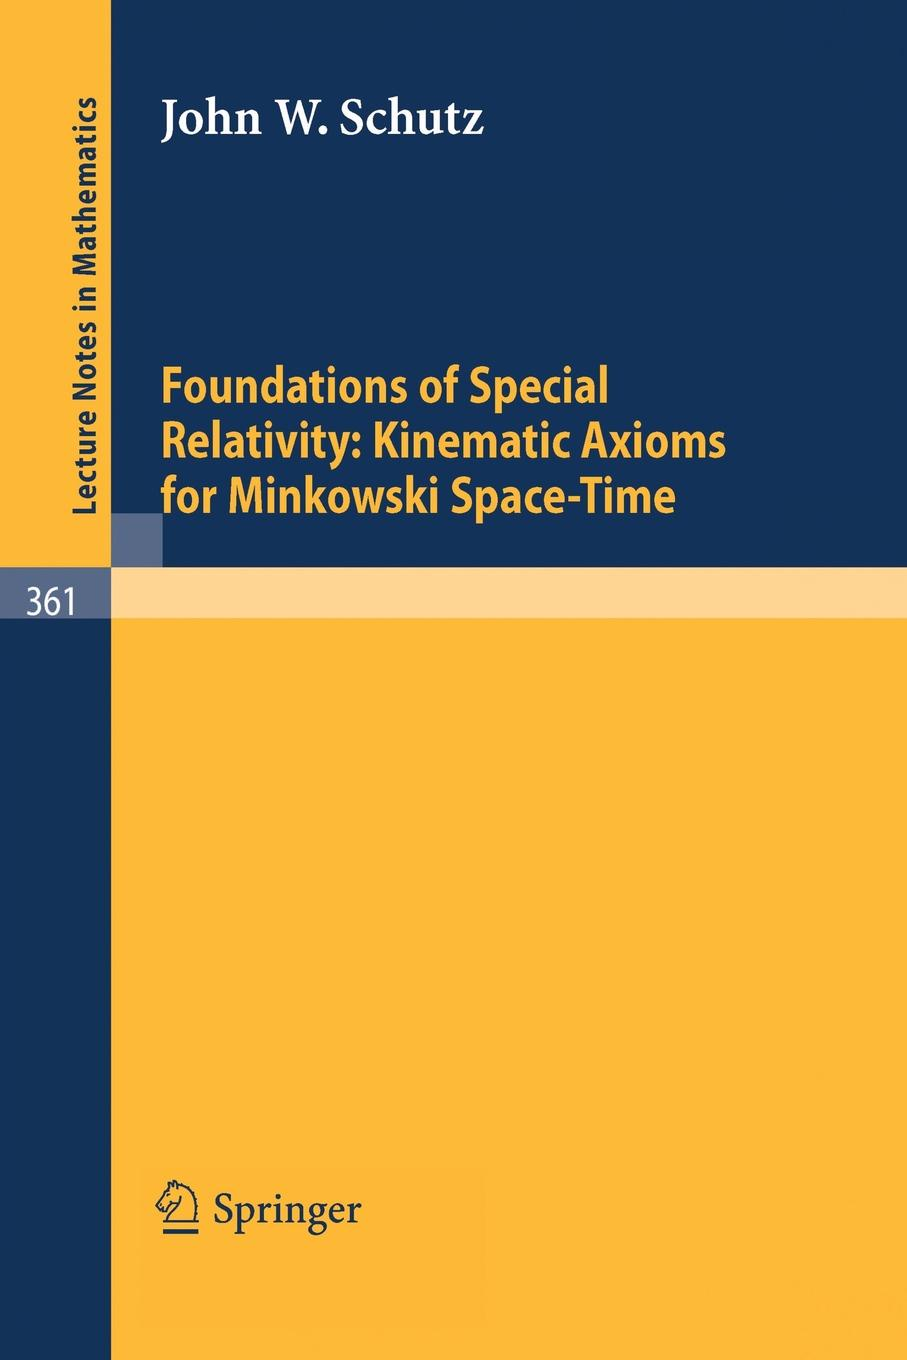 J. W. Schutz Foundations of Special Relativity. Kinematic Axioms for Minkowski Space-Time costas christodoulides the special theory of relativity foundations theory verification applications